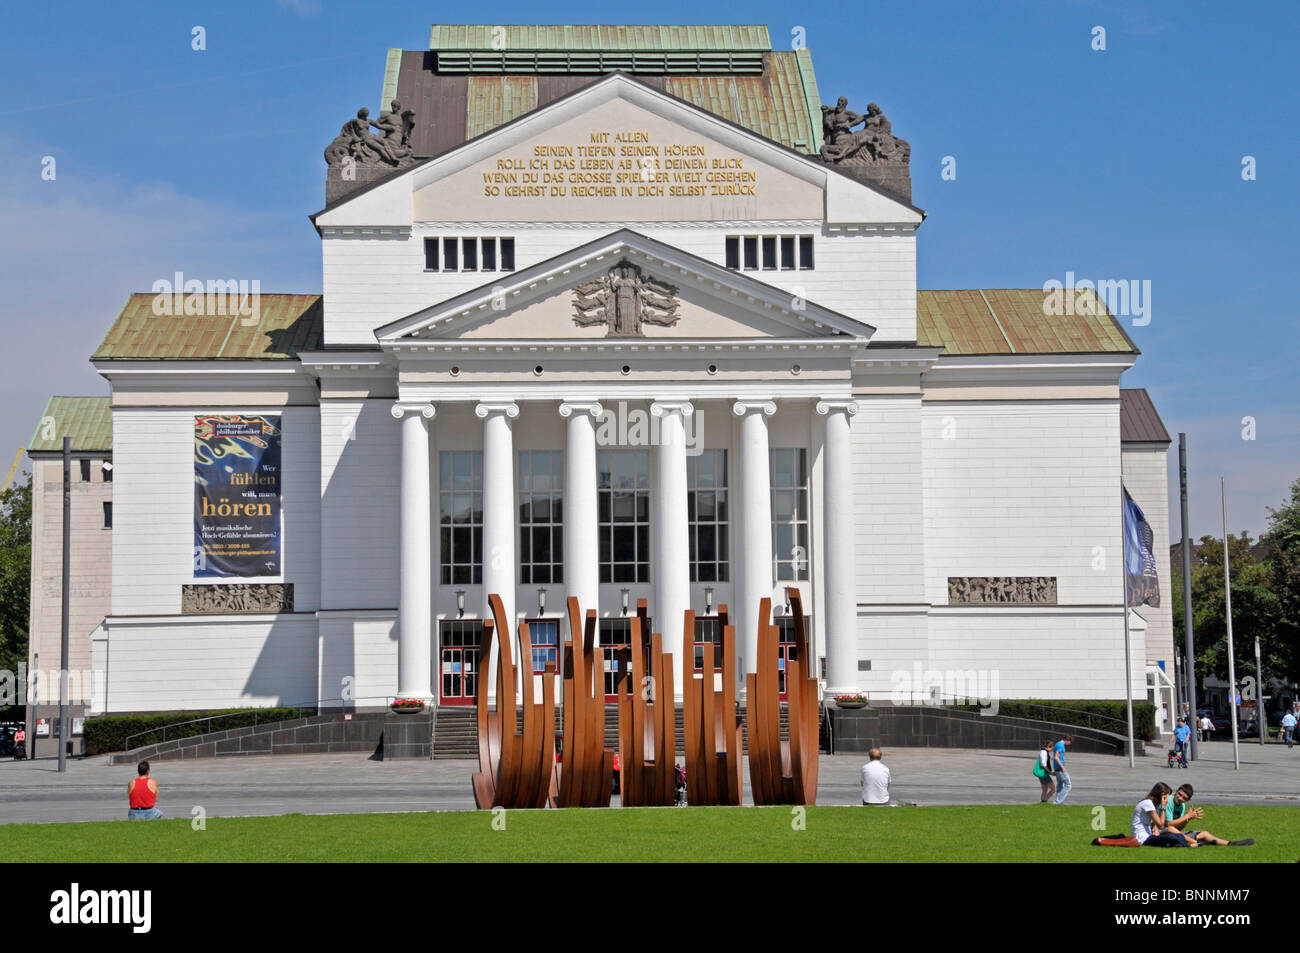 Architecture Outside View Ballet House Building In German German Opera On  Rhine Germany Duisburg Europe Building Construction